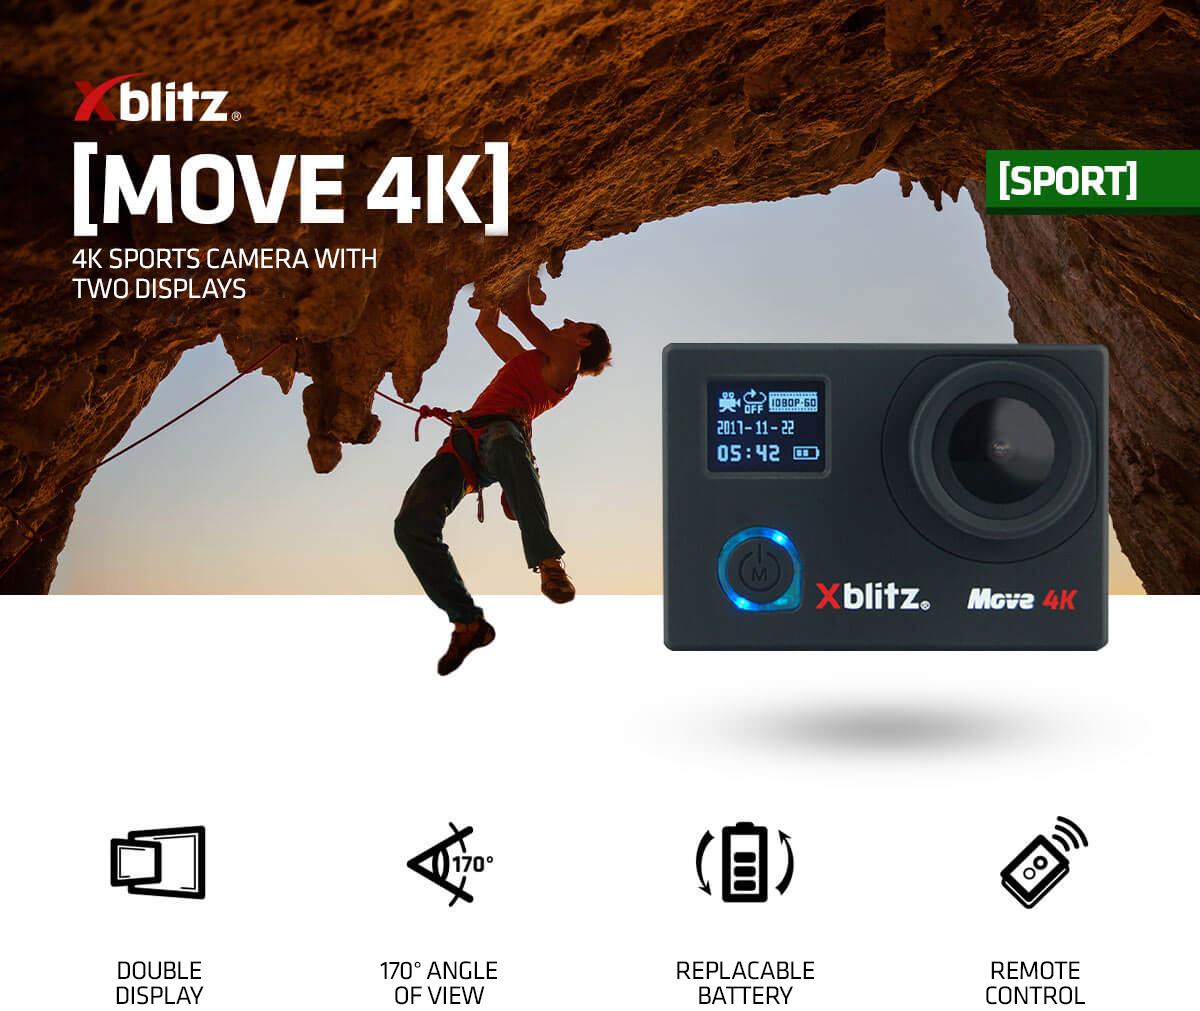 Xblitz Move 4K sports camera with double display